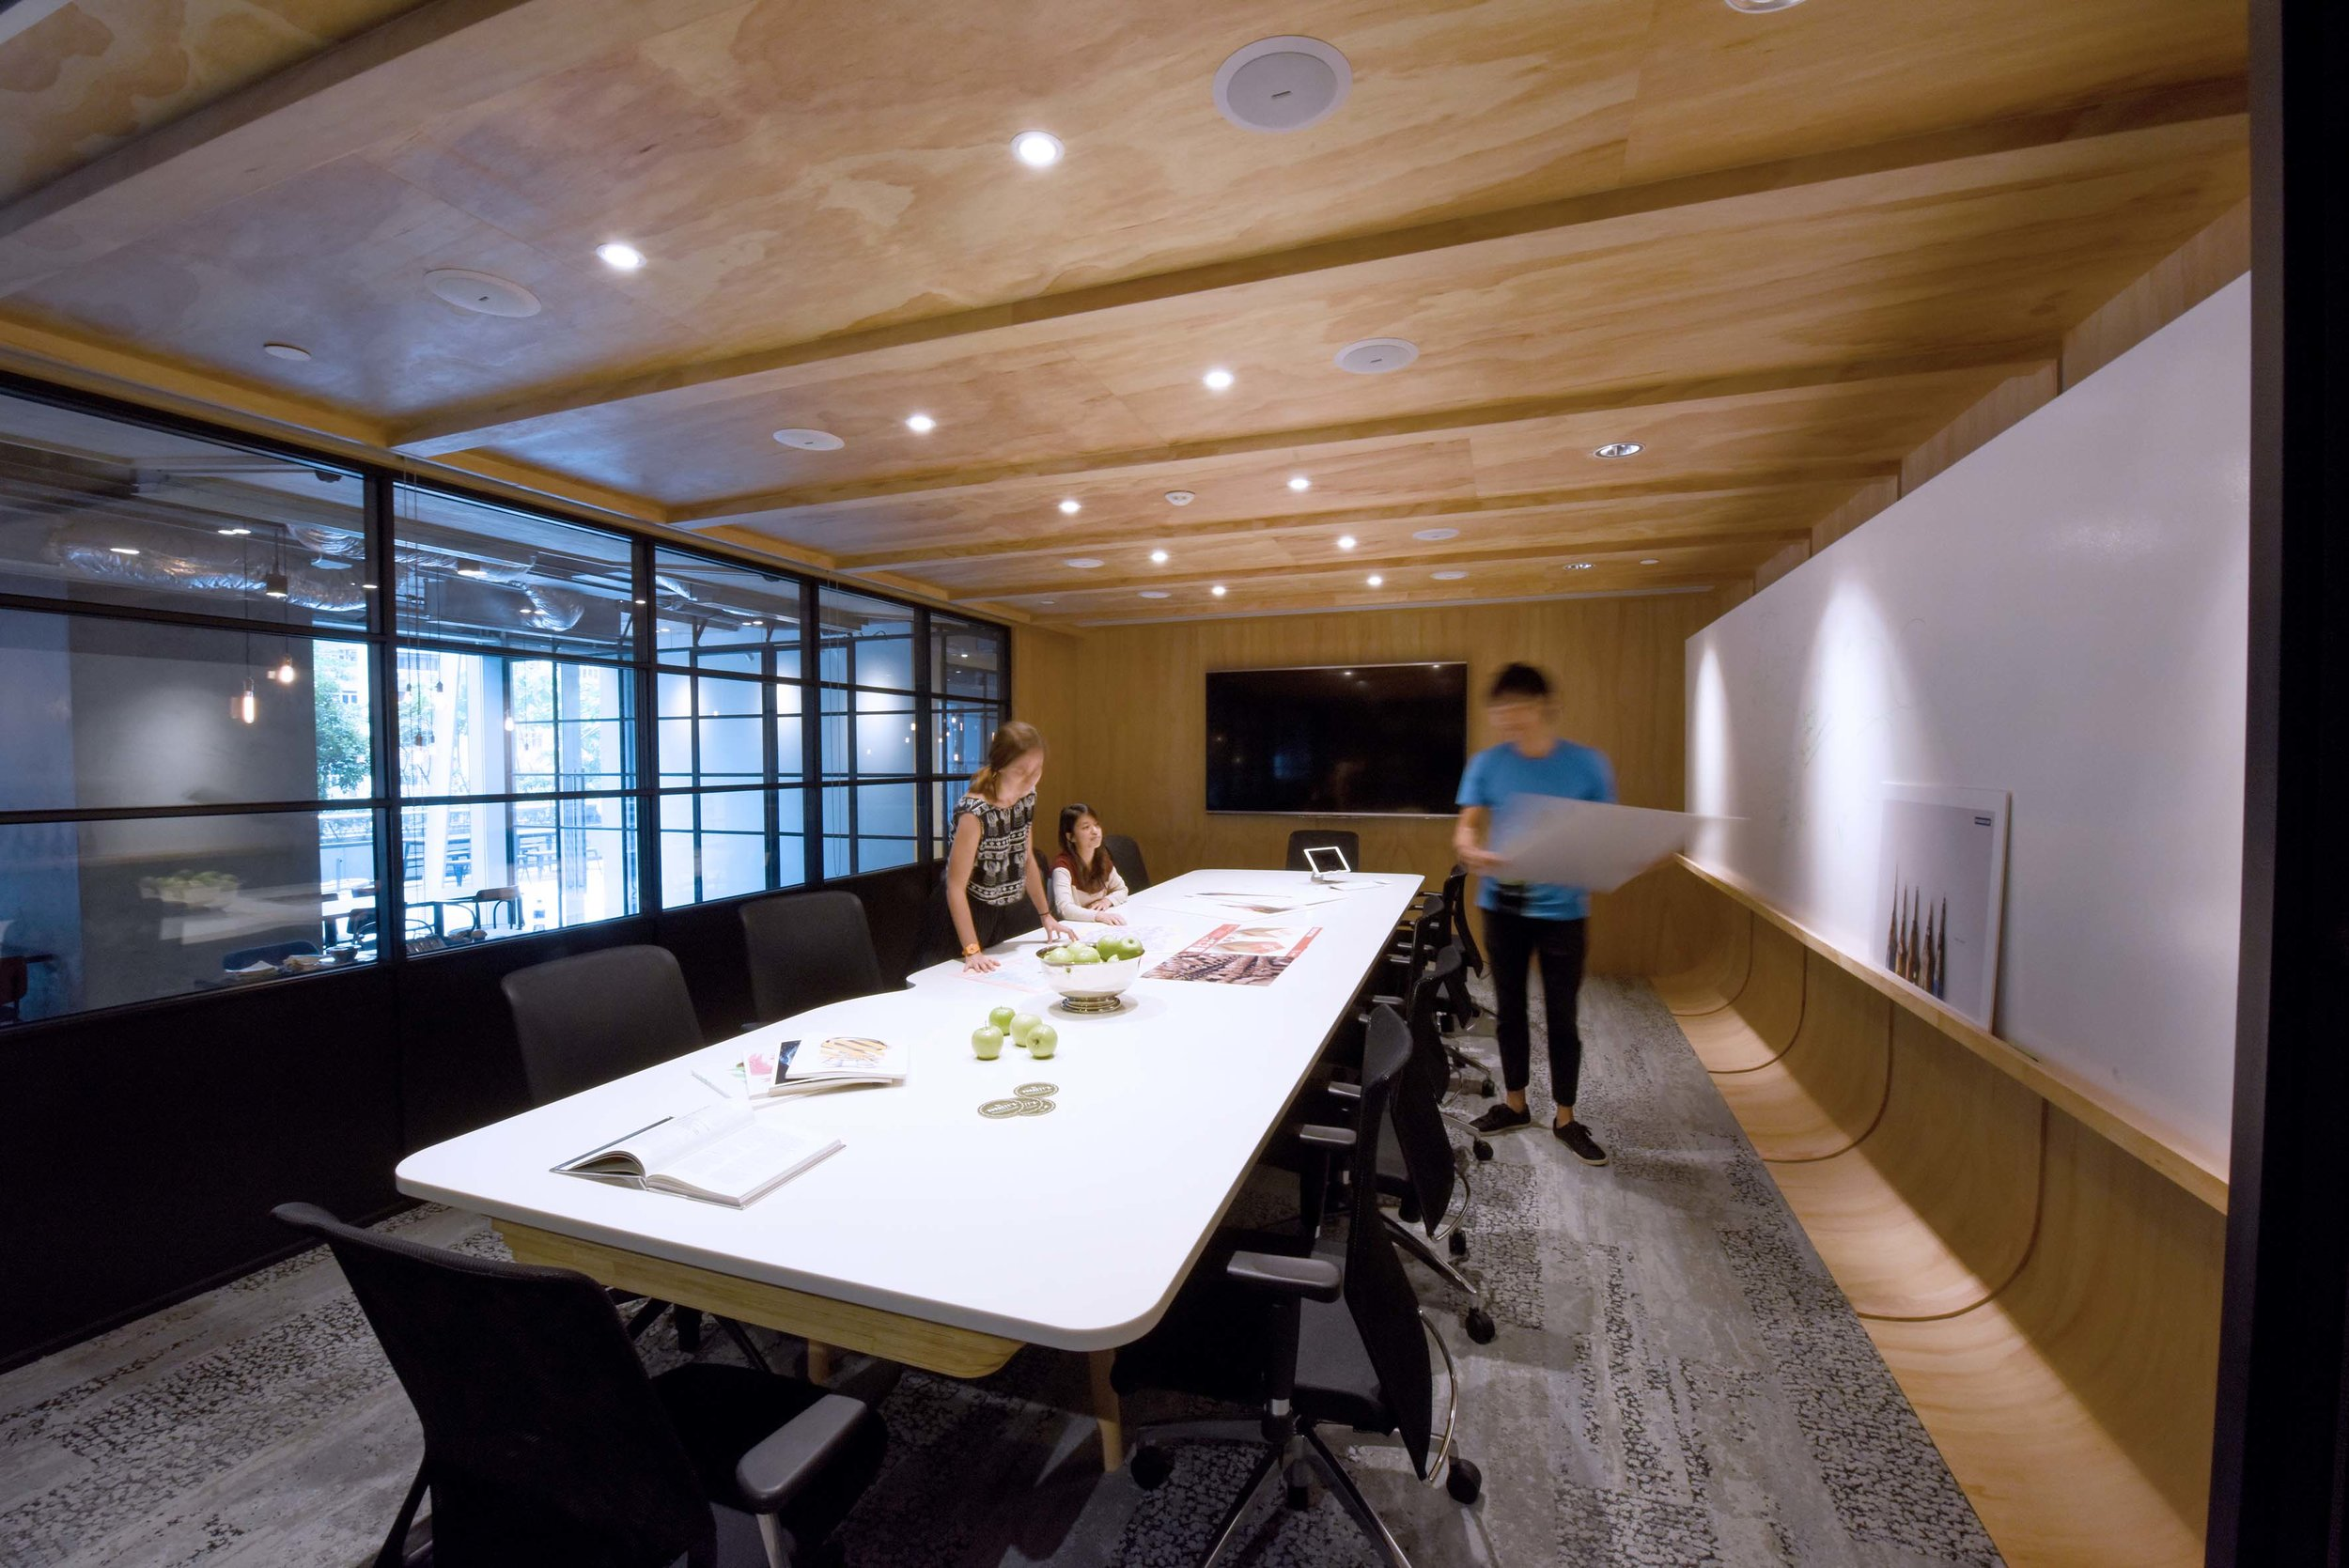 The bespoke CNC milled meeting tables inside were uniquely designed using layers of plywood and corian to house all AV equipment.